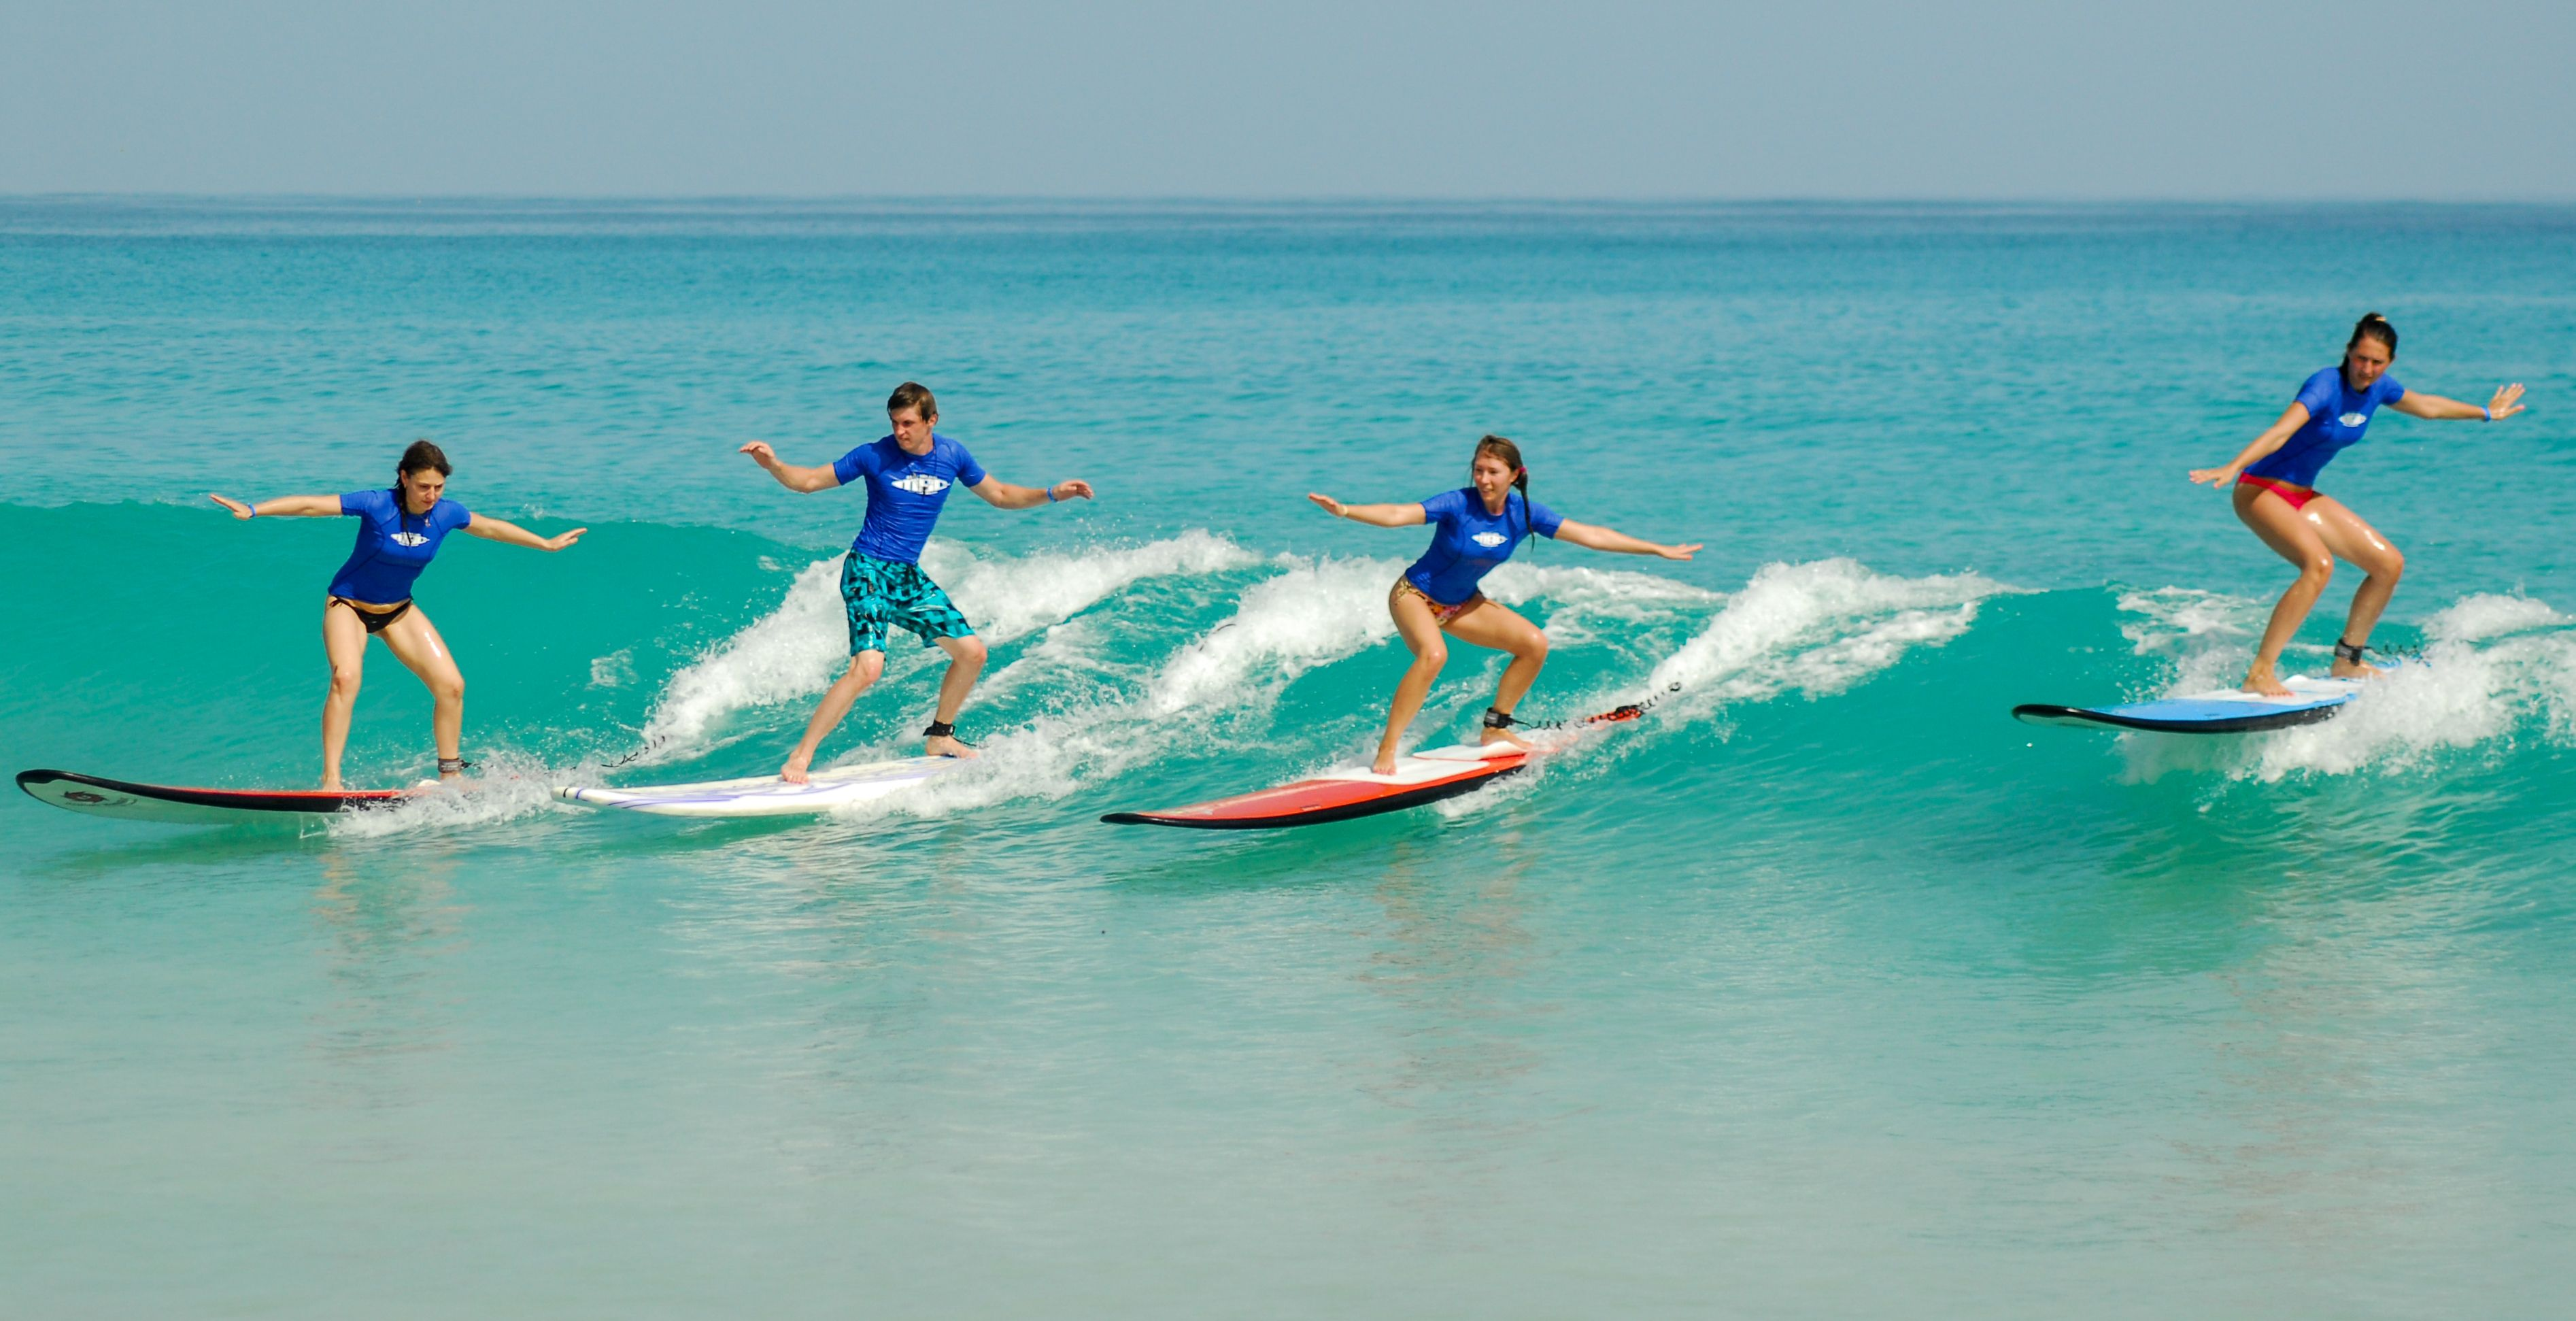 Surf Lessons Outdoors Adventure Surfing Surf Camp